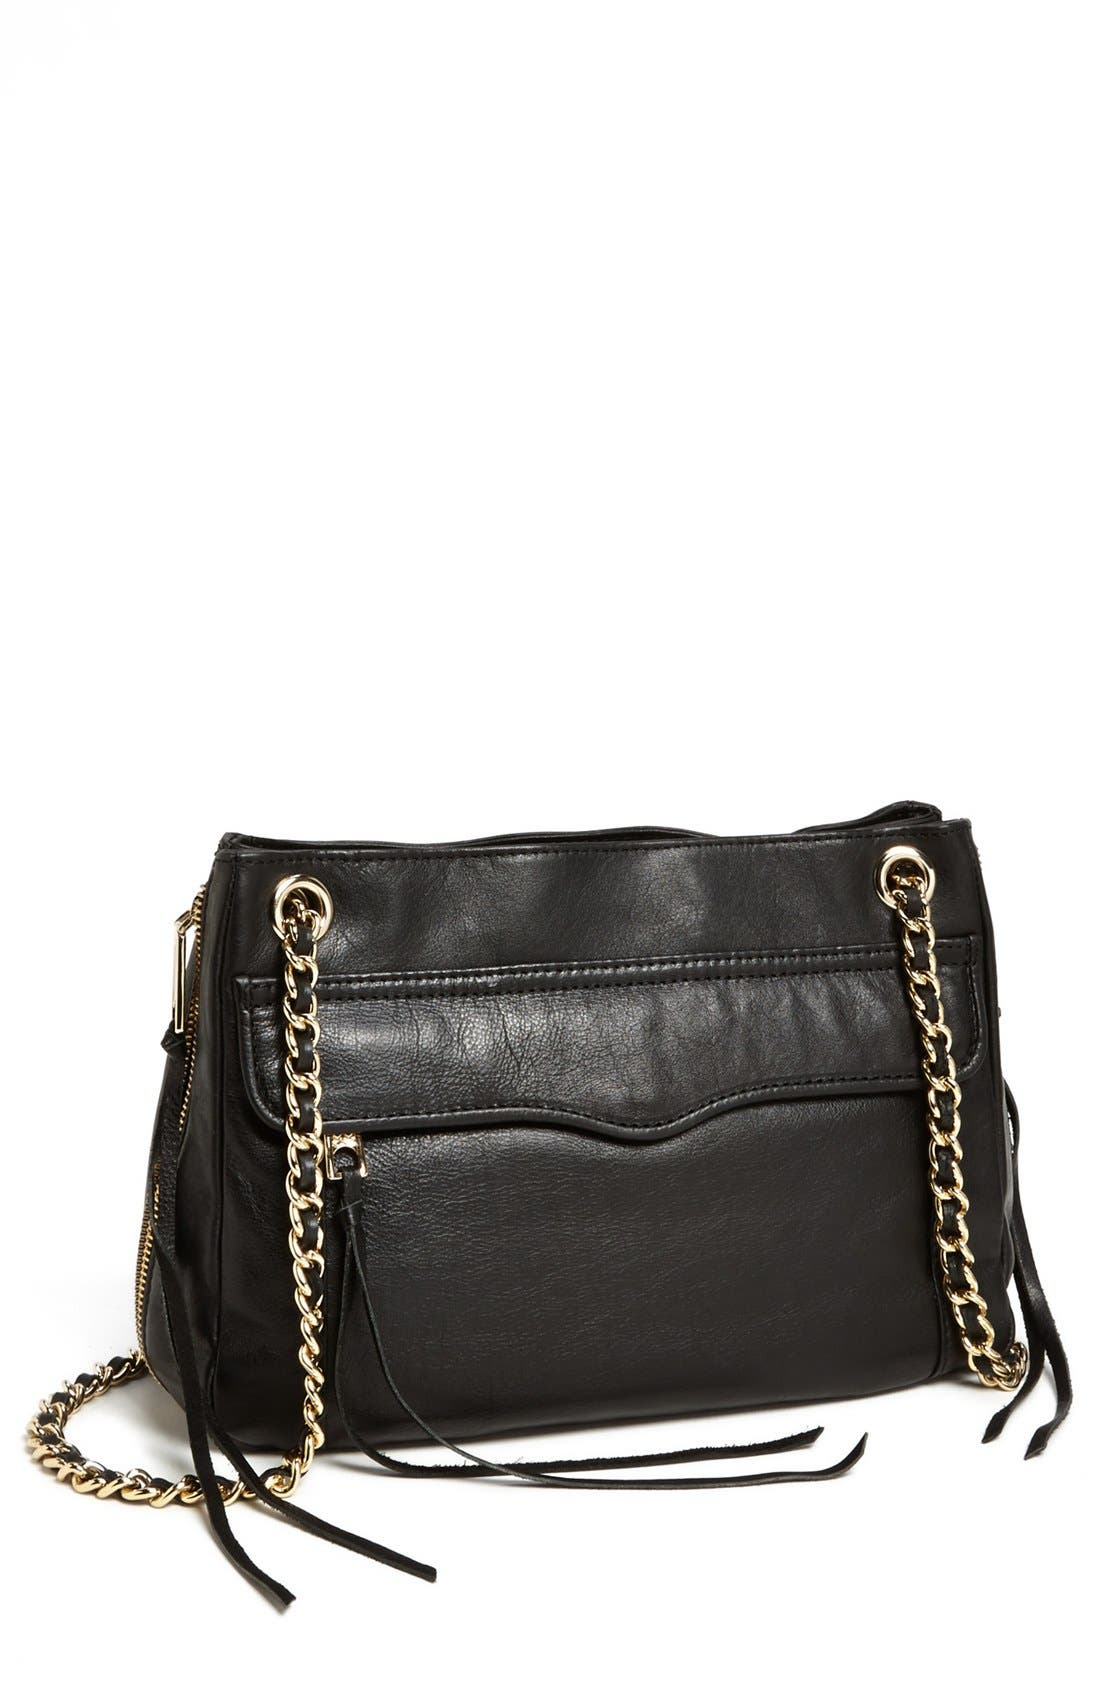 REBECCA MINKOFF 'Swing' Convertible Shoulder Bag, Main, color, 003